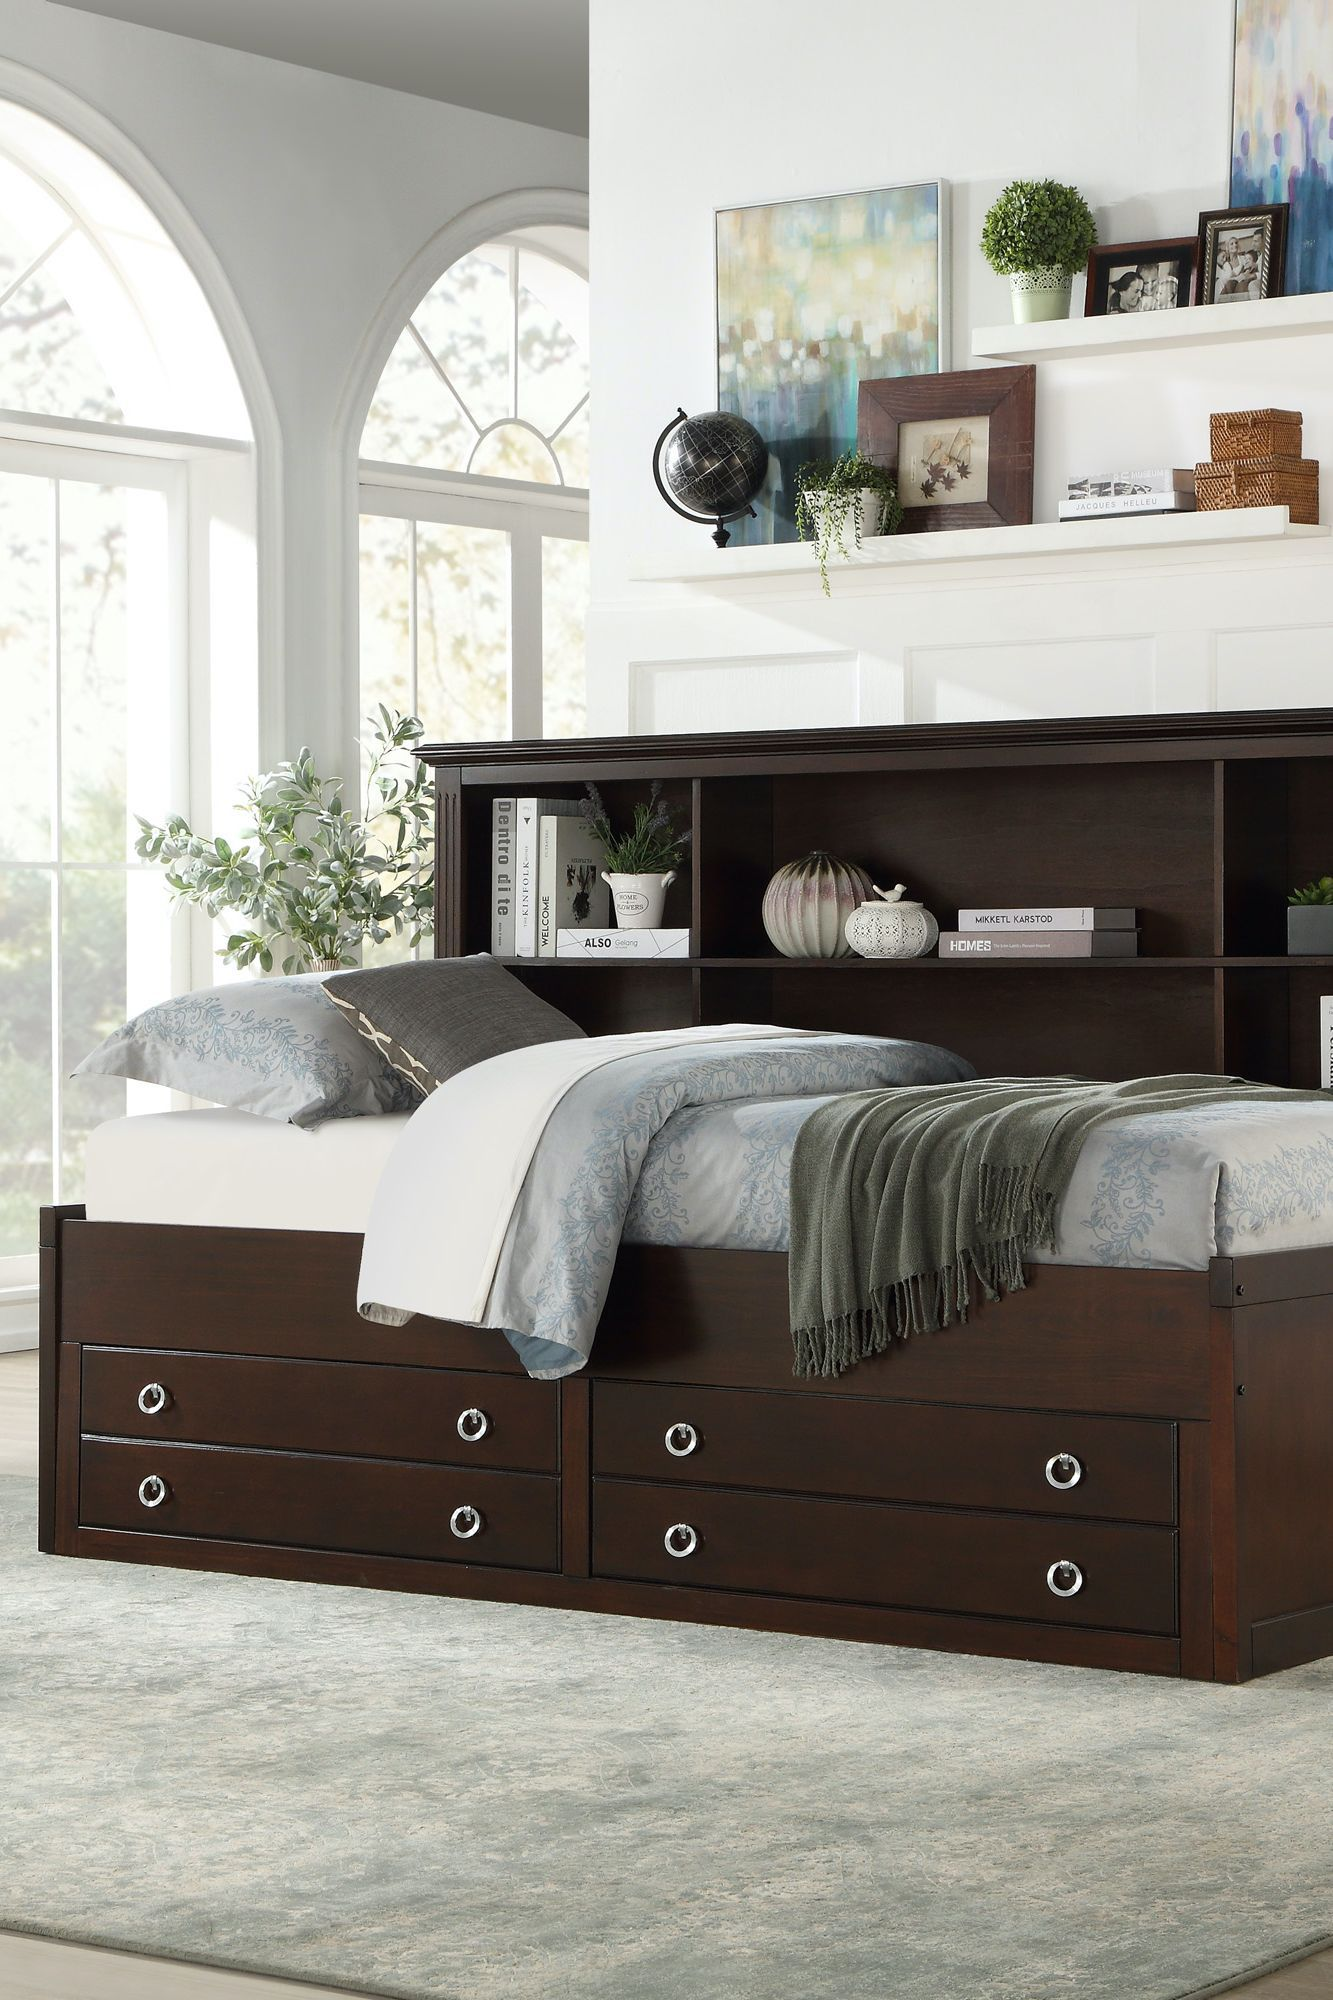 Kate Lounge Storage Bed Rowe Furniture Storage Bed Furniture